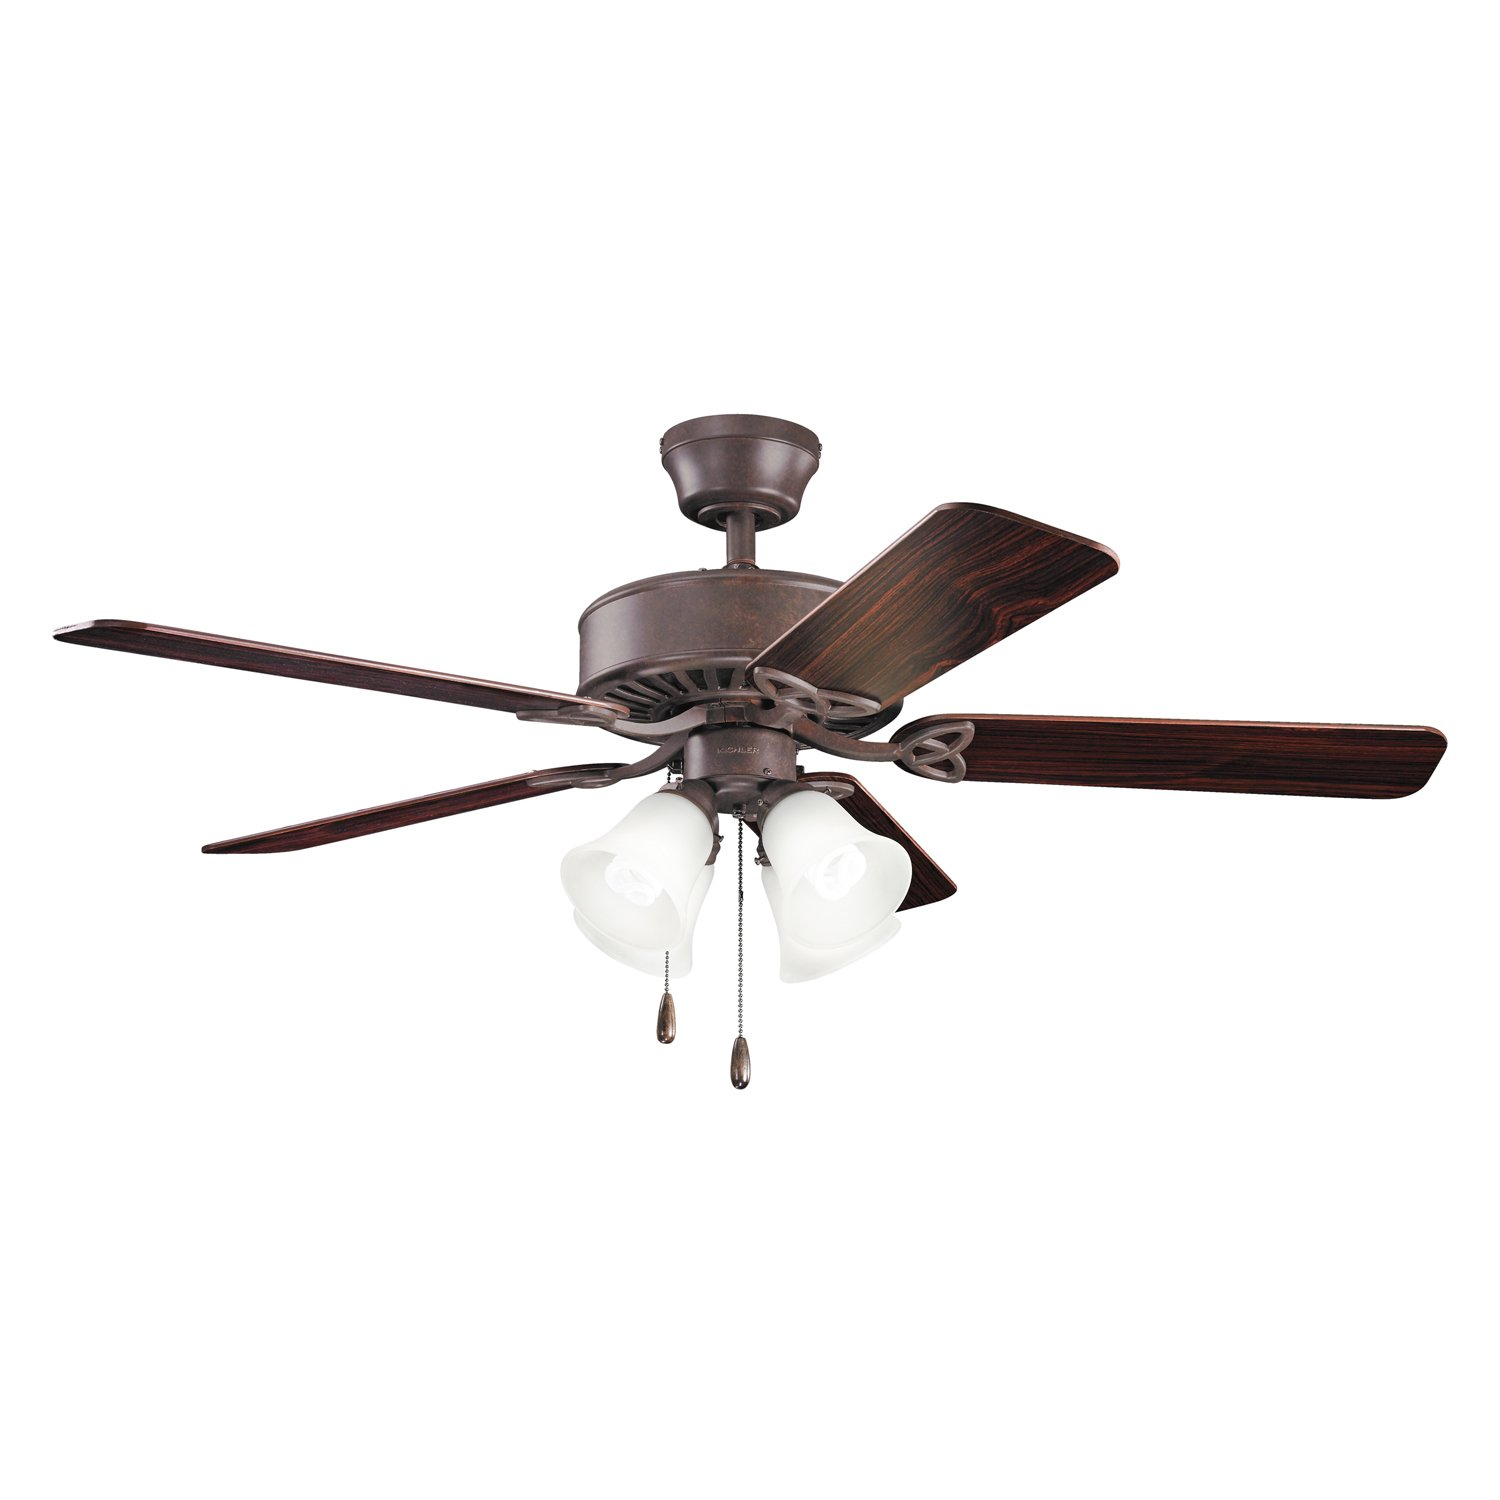 Kichler 339240WH, Renew Premier White 50' Ceiling Fan with Light Renew Premier White 50 Ceiling Fan with Light